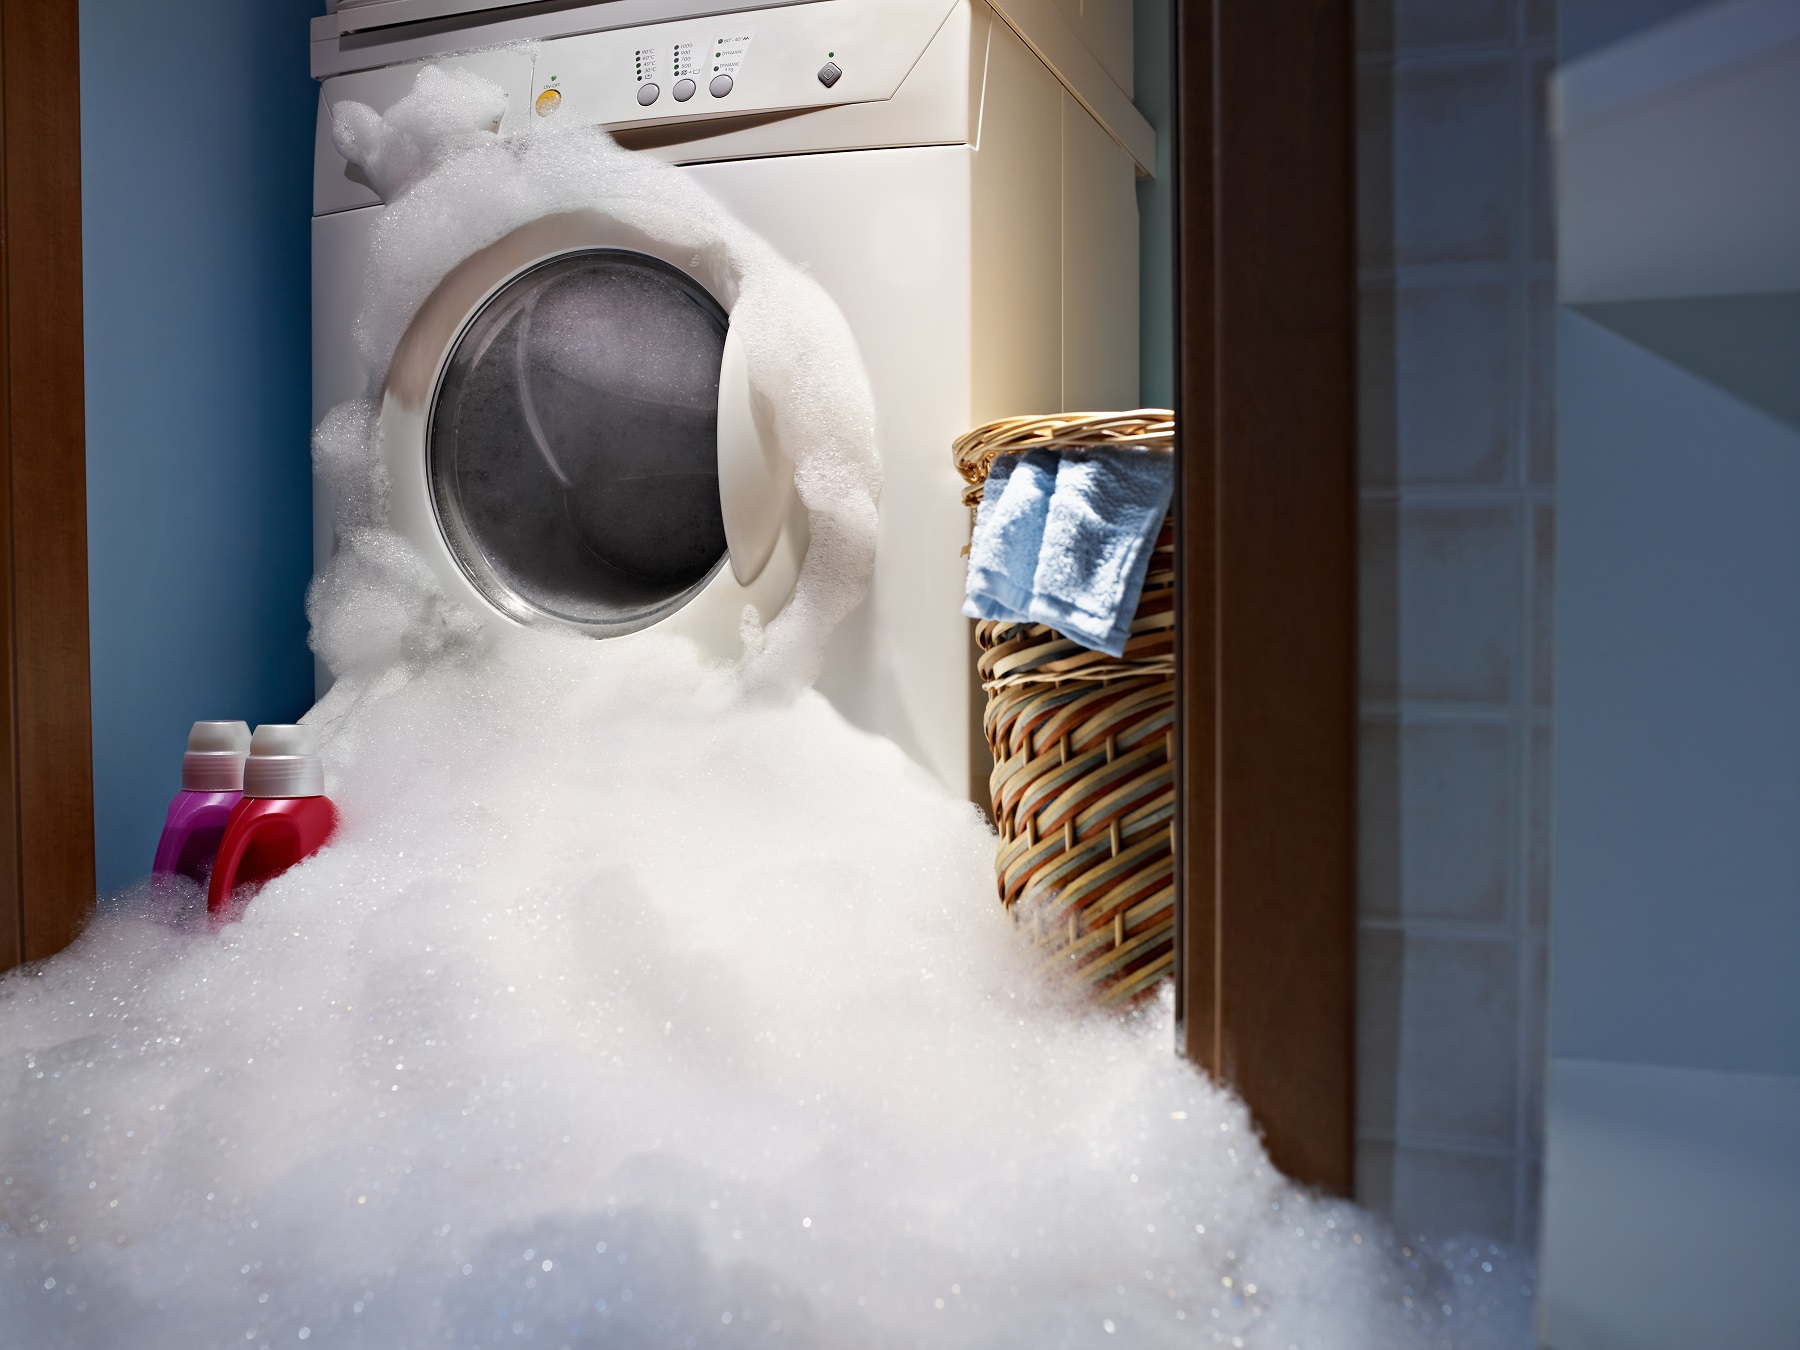 soap coming out from broken washing machine